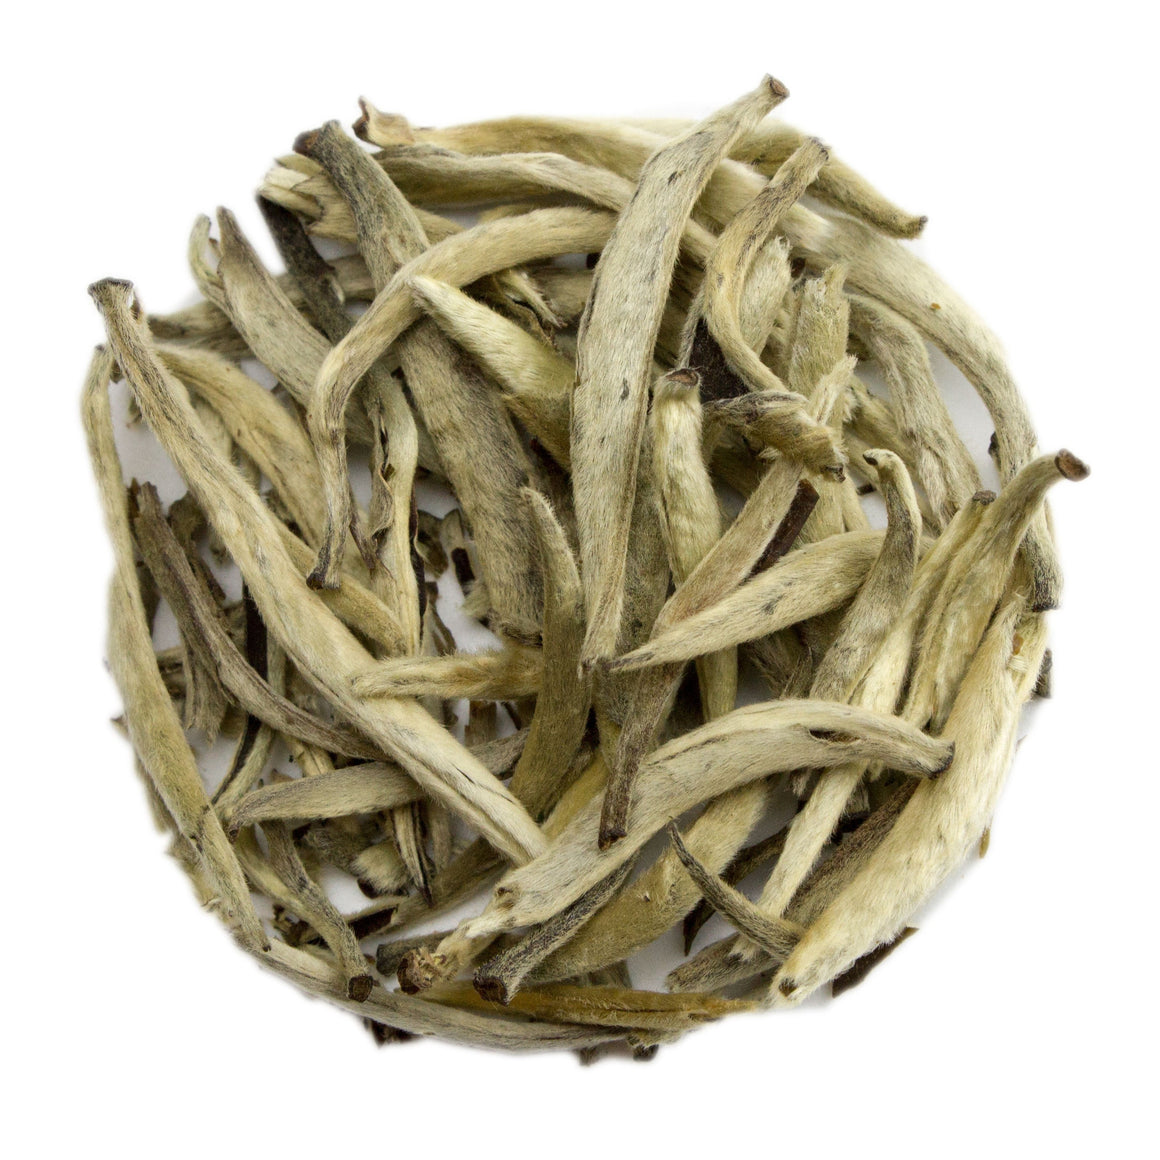 Yunnan Moonlight White Tea